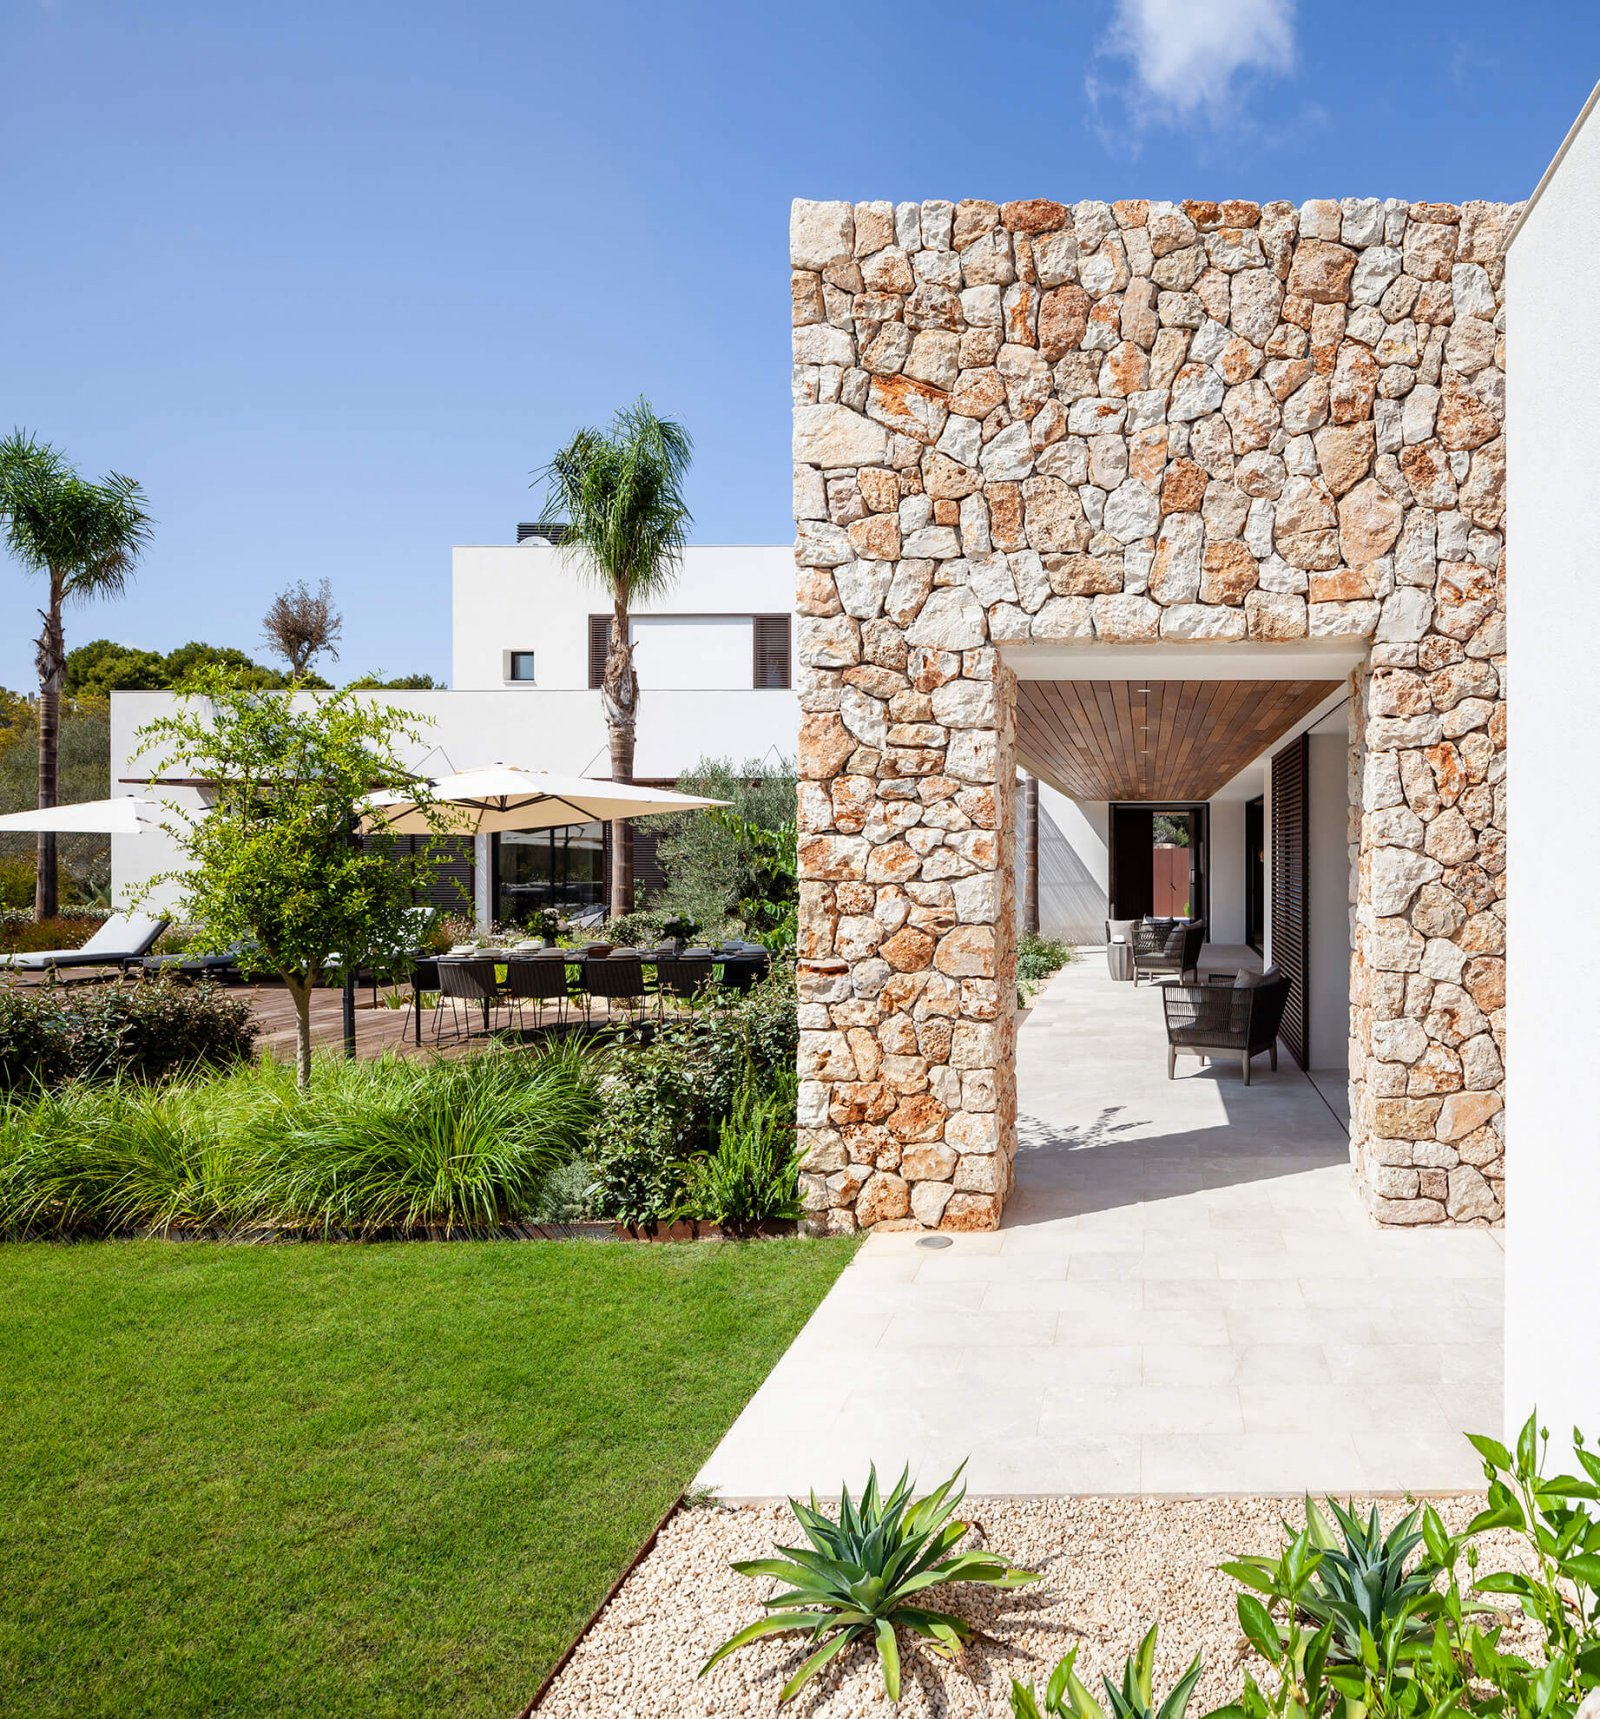 Another view of the garden, chill-out and stone facade of the Sol de Mallorca house